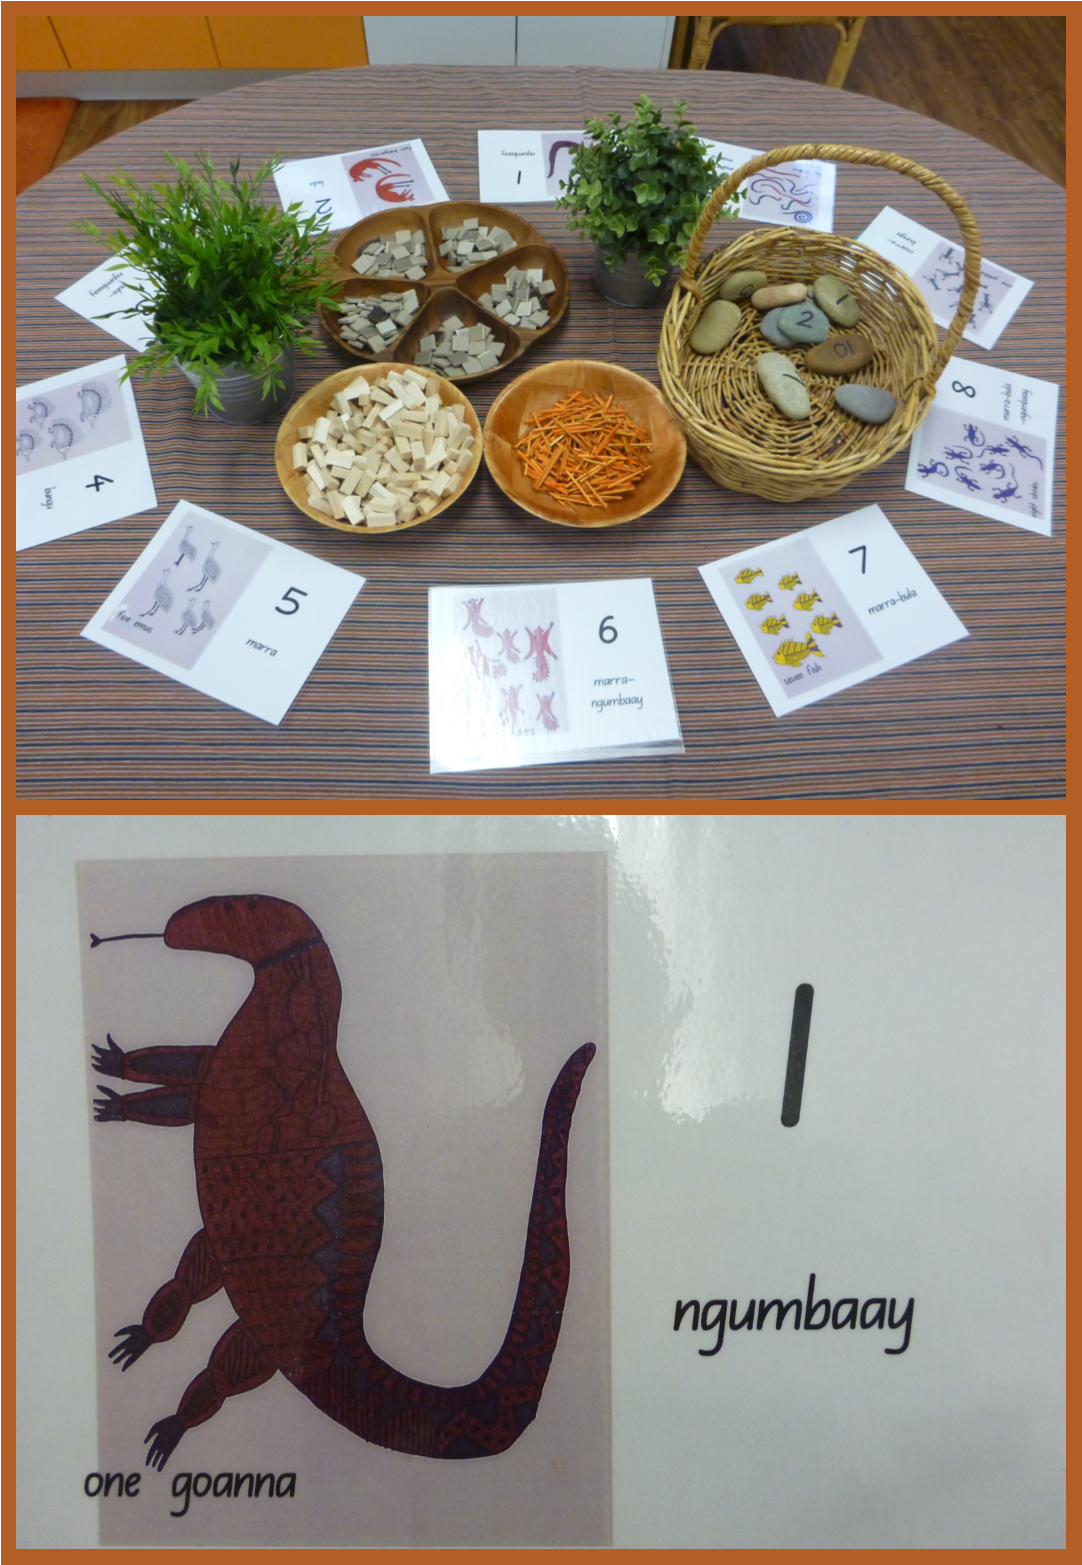 Using A Range Of Materials For Counting With Wiradjuri